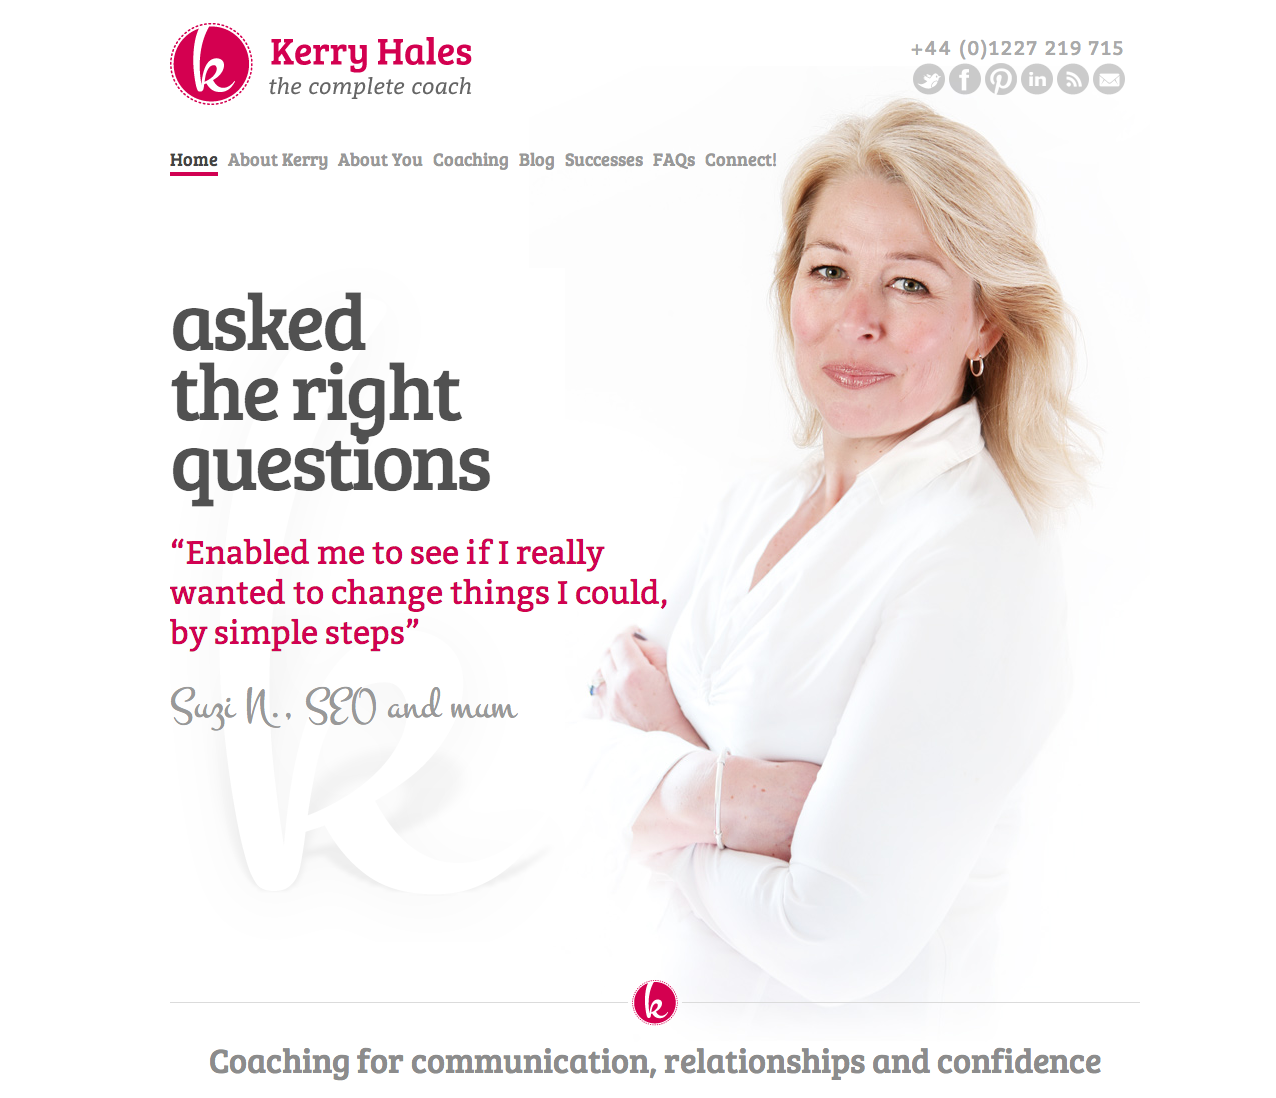 Kerry Hales - The Compete Coach